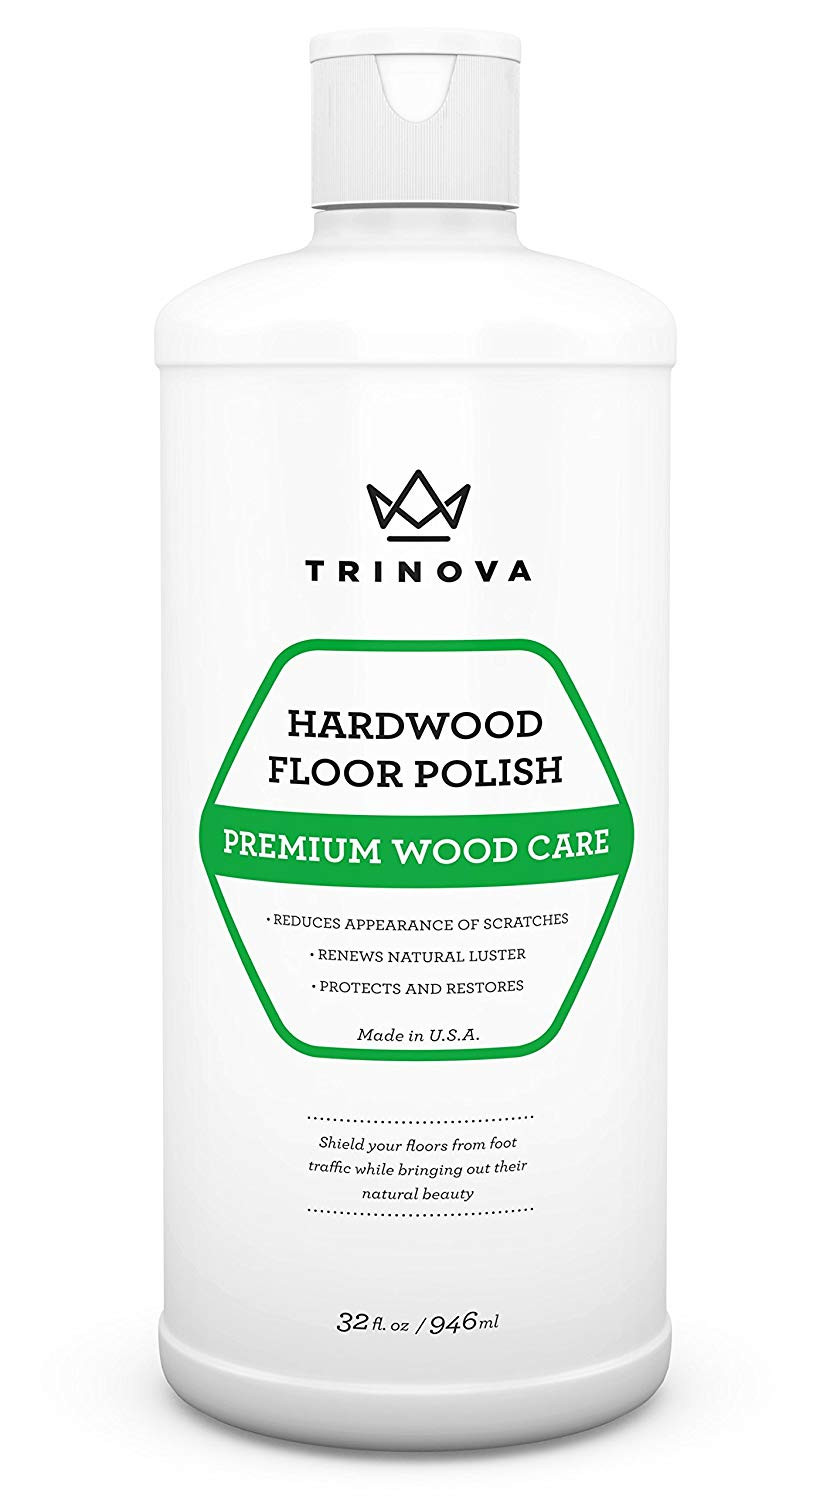 Hardwood Floor Cleaner Liquid Of Amazon Com Trinova Hardwood Floor Polish and Restorer High Gloss with Amazon Com Trinova Hardwood Floor Polish and Restorer High Gloss Wax Protective Coating Best Resurfacing Applicator with Mop or Machine to Restore